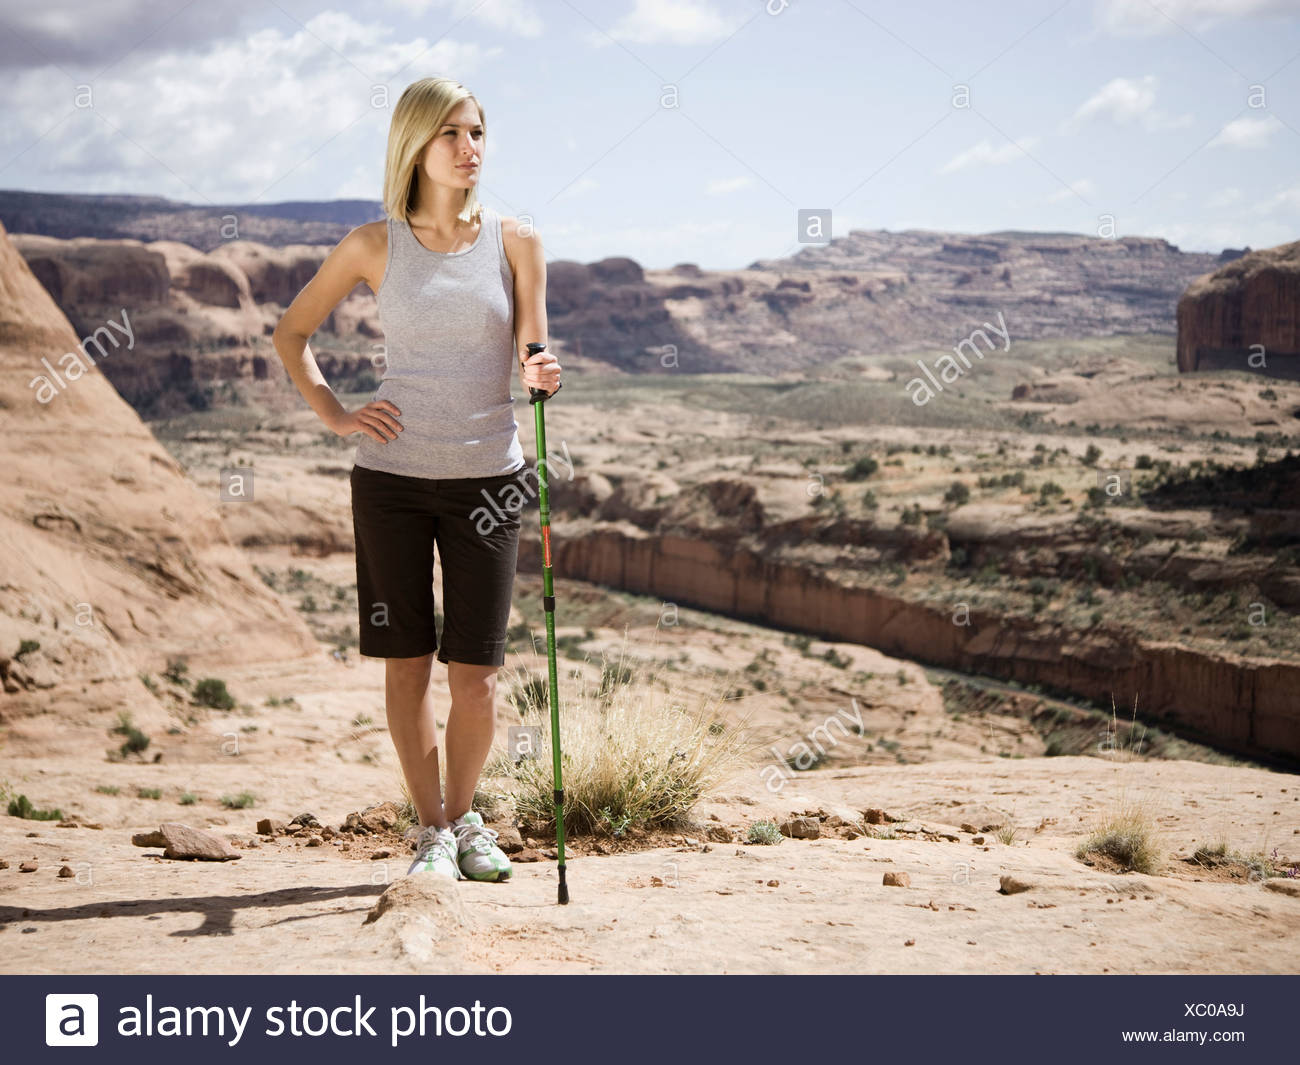 woman in the desert - Stock Image